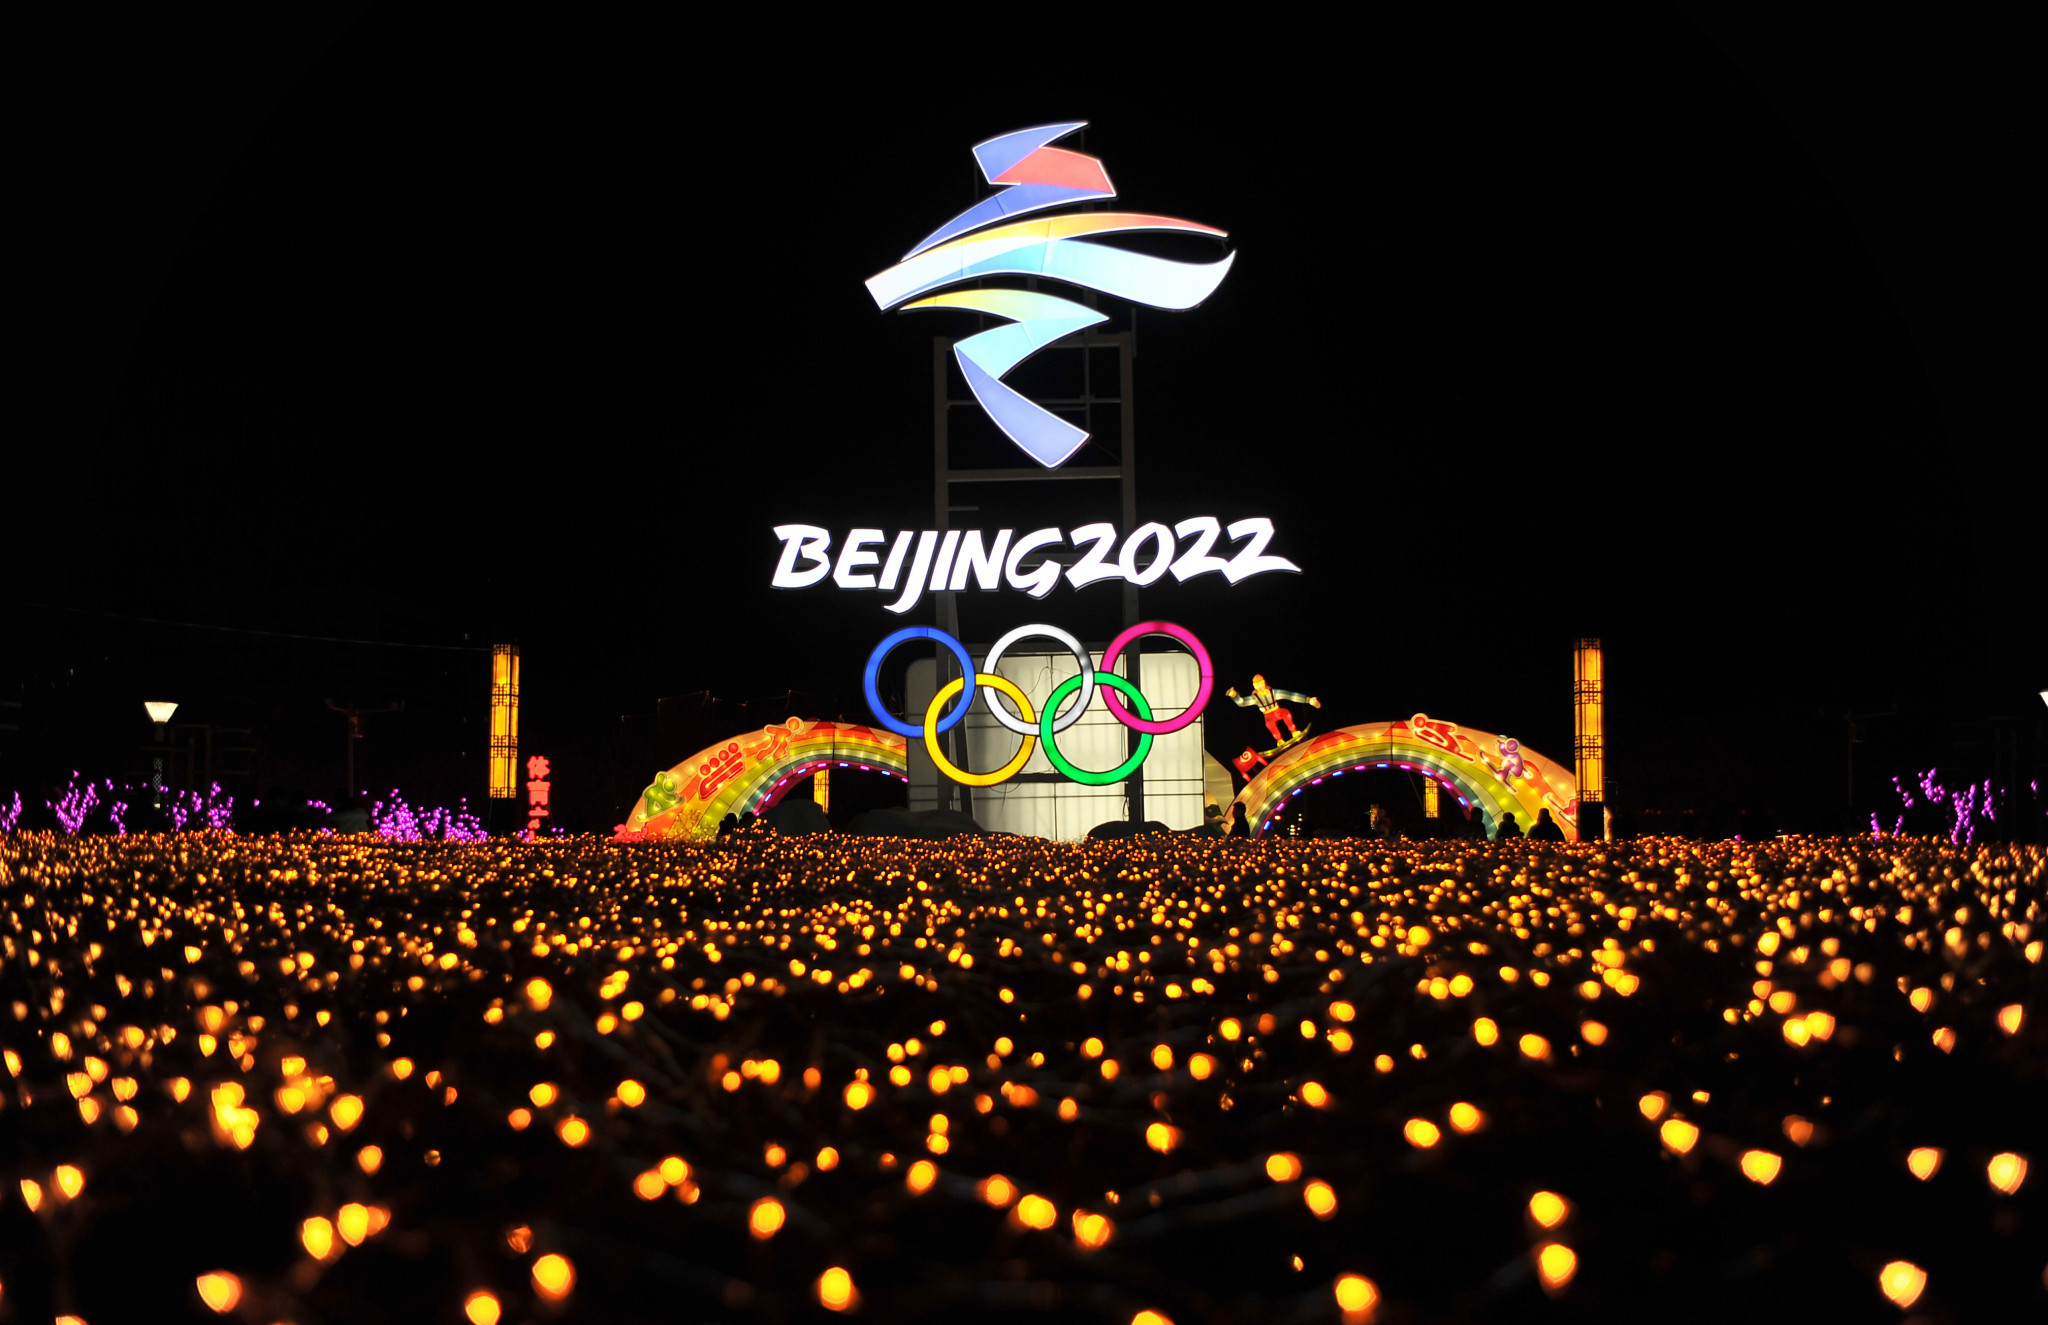 First Executive Learning Pathway held for Beijing 2022 Winter Olympic and Paralympic Games